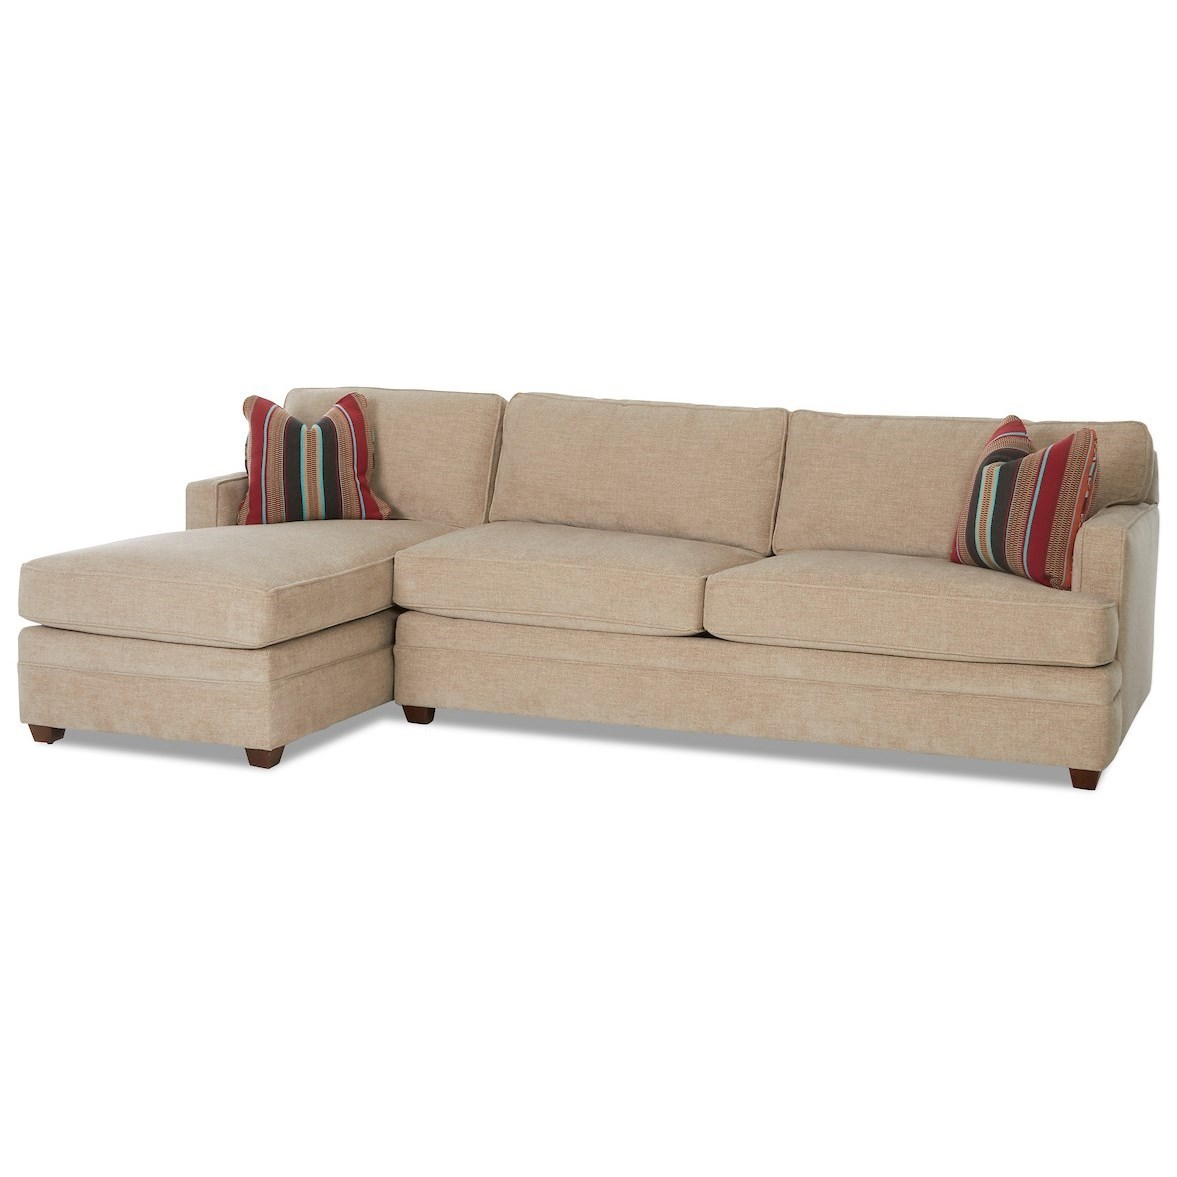 2-Piece Sectional Sofa with RAF Dreamquest Sleeper